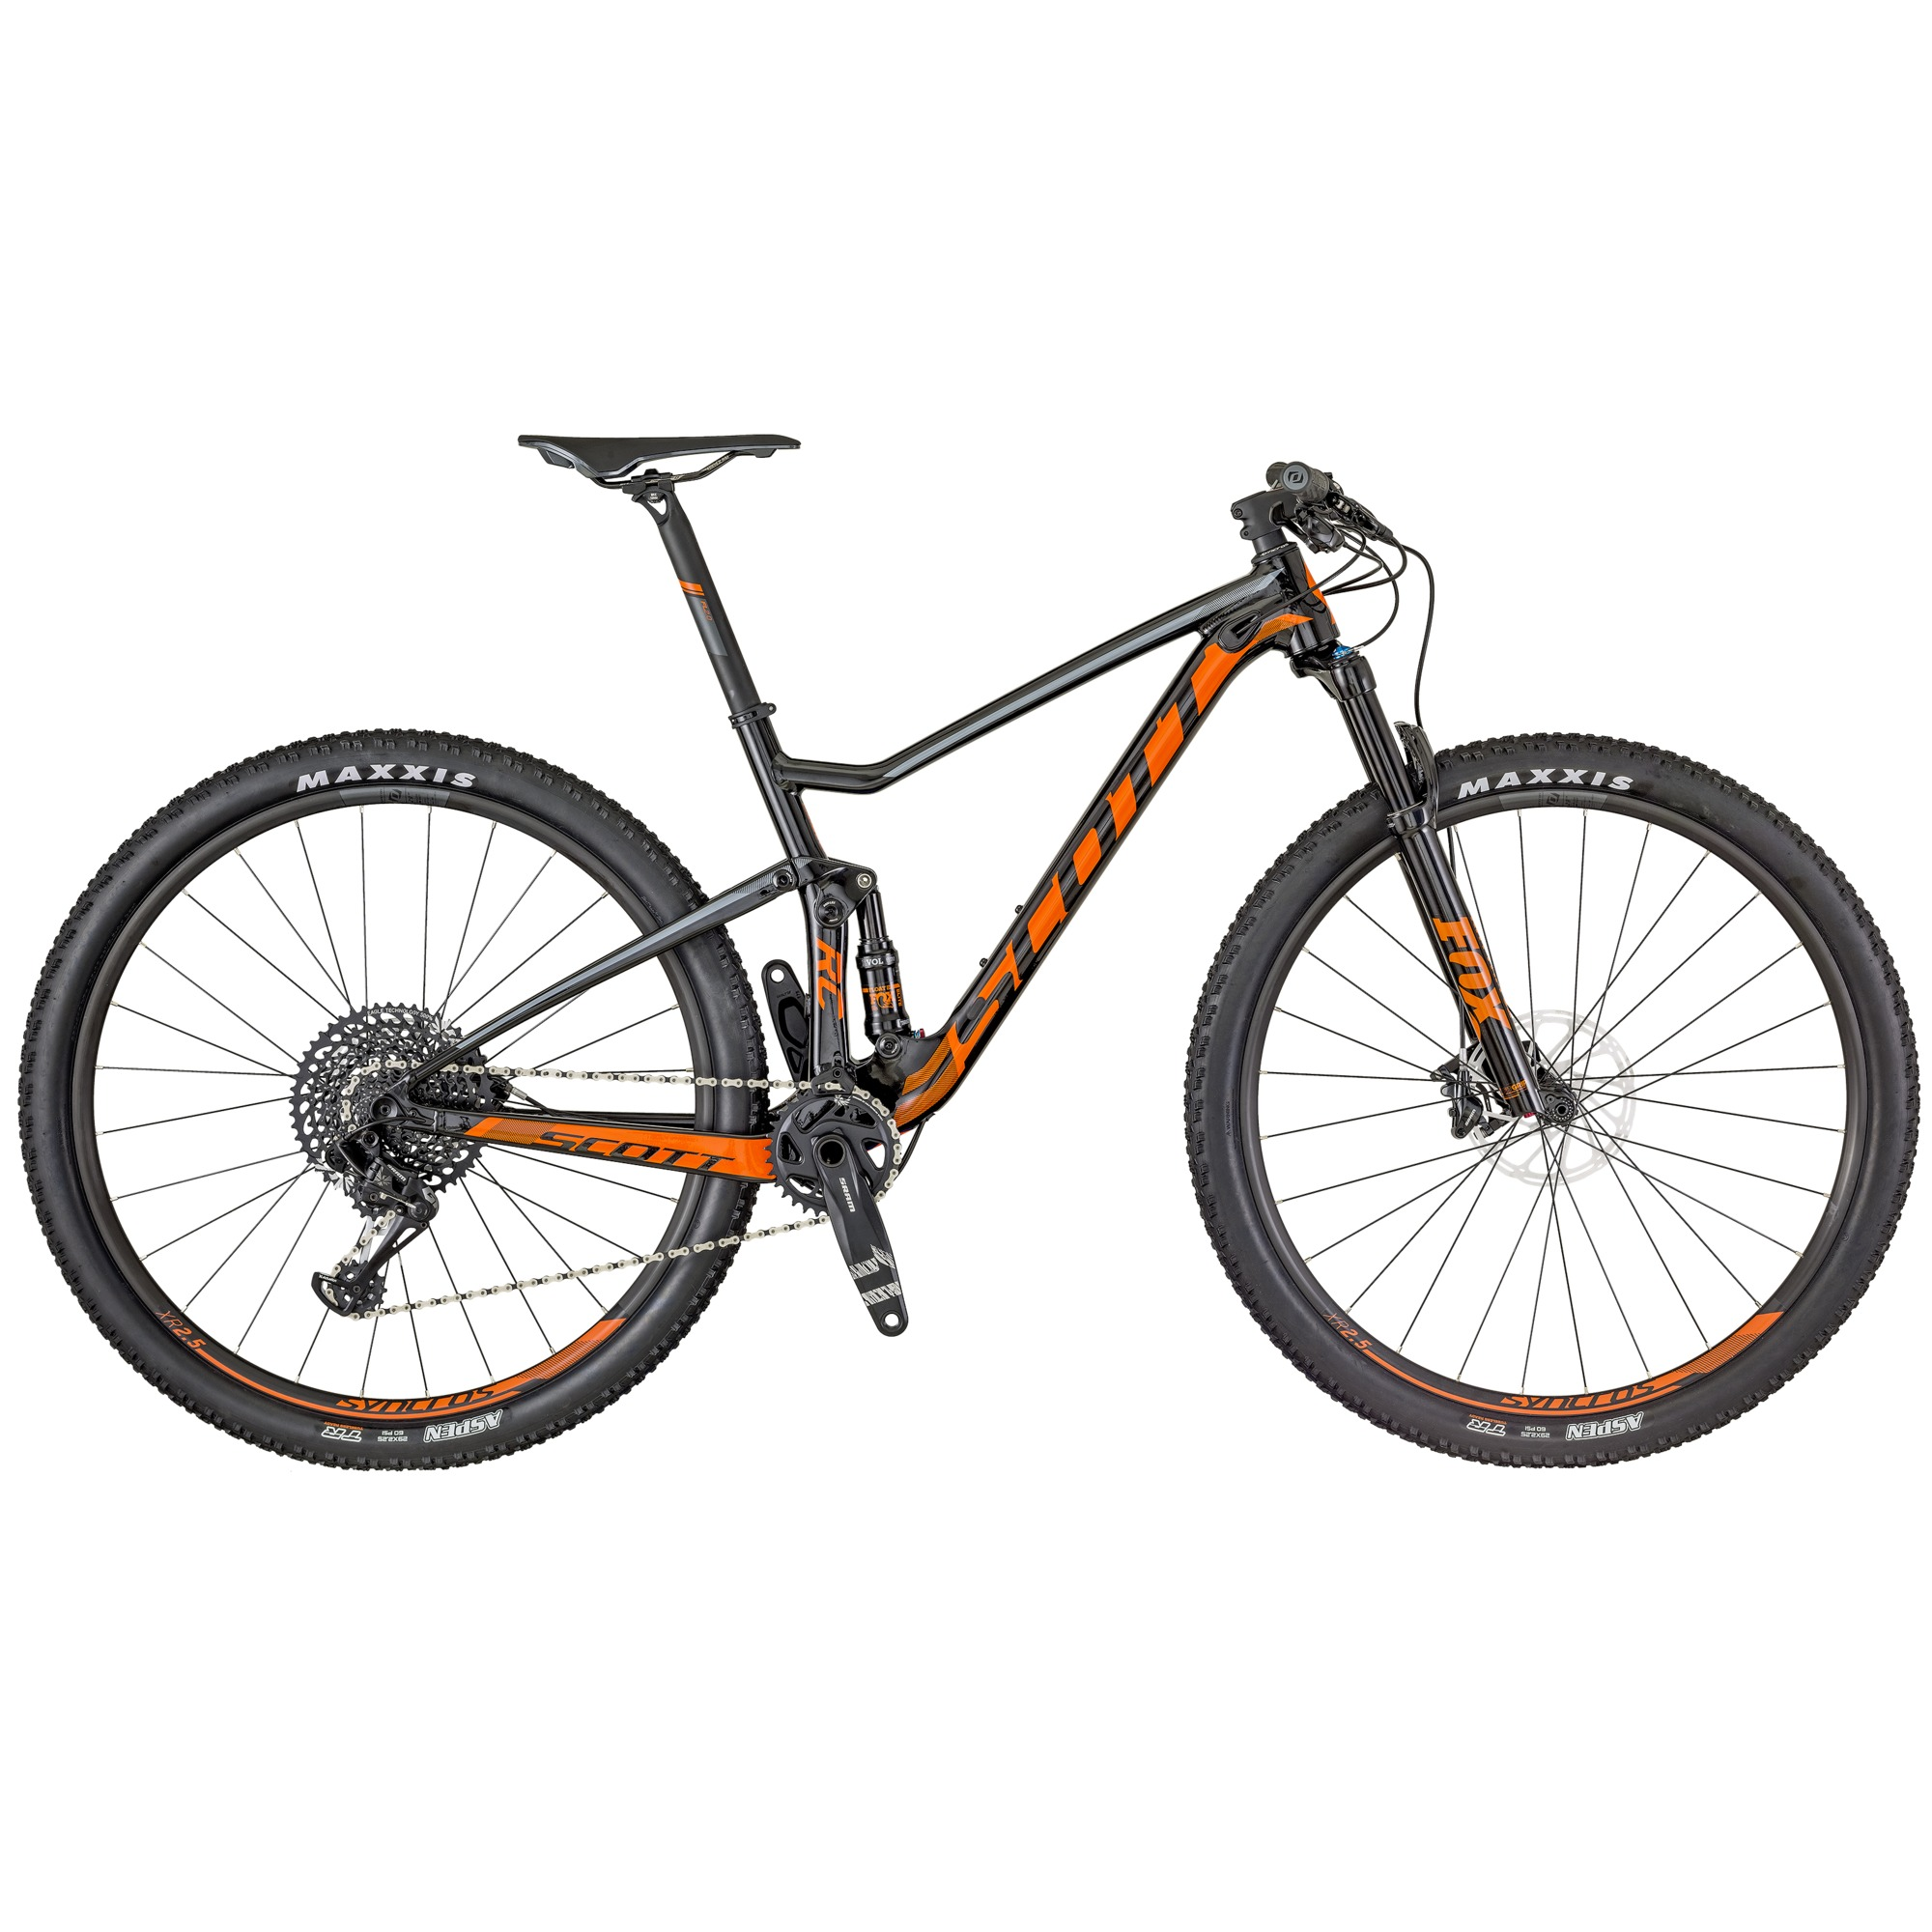 SCOTT Spark RC 900 Comp Bike L - Zweirad Homann